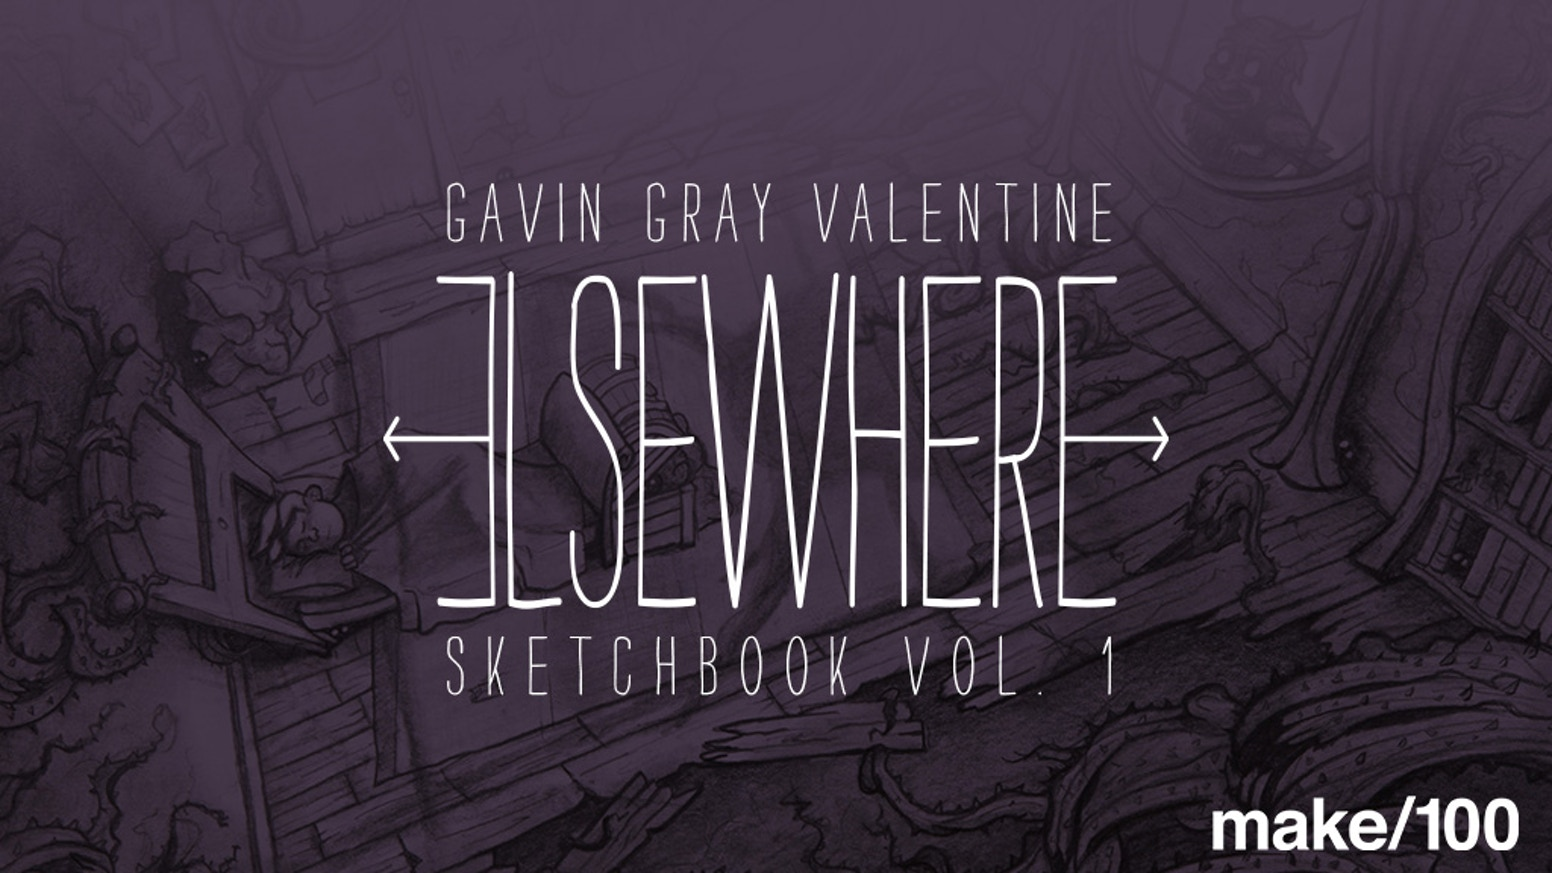 A limited edition collection of sketches from my first years as a professional illustrator.